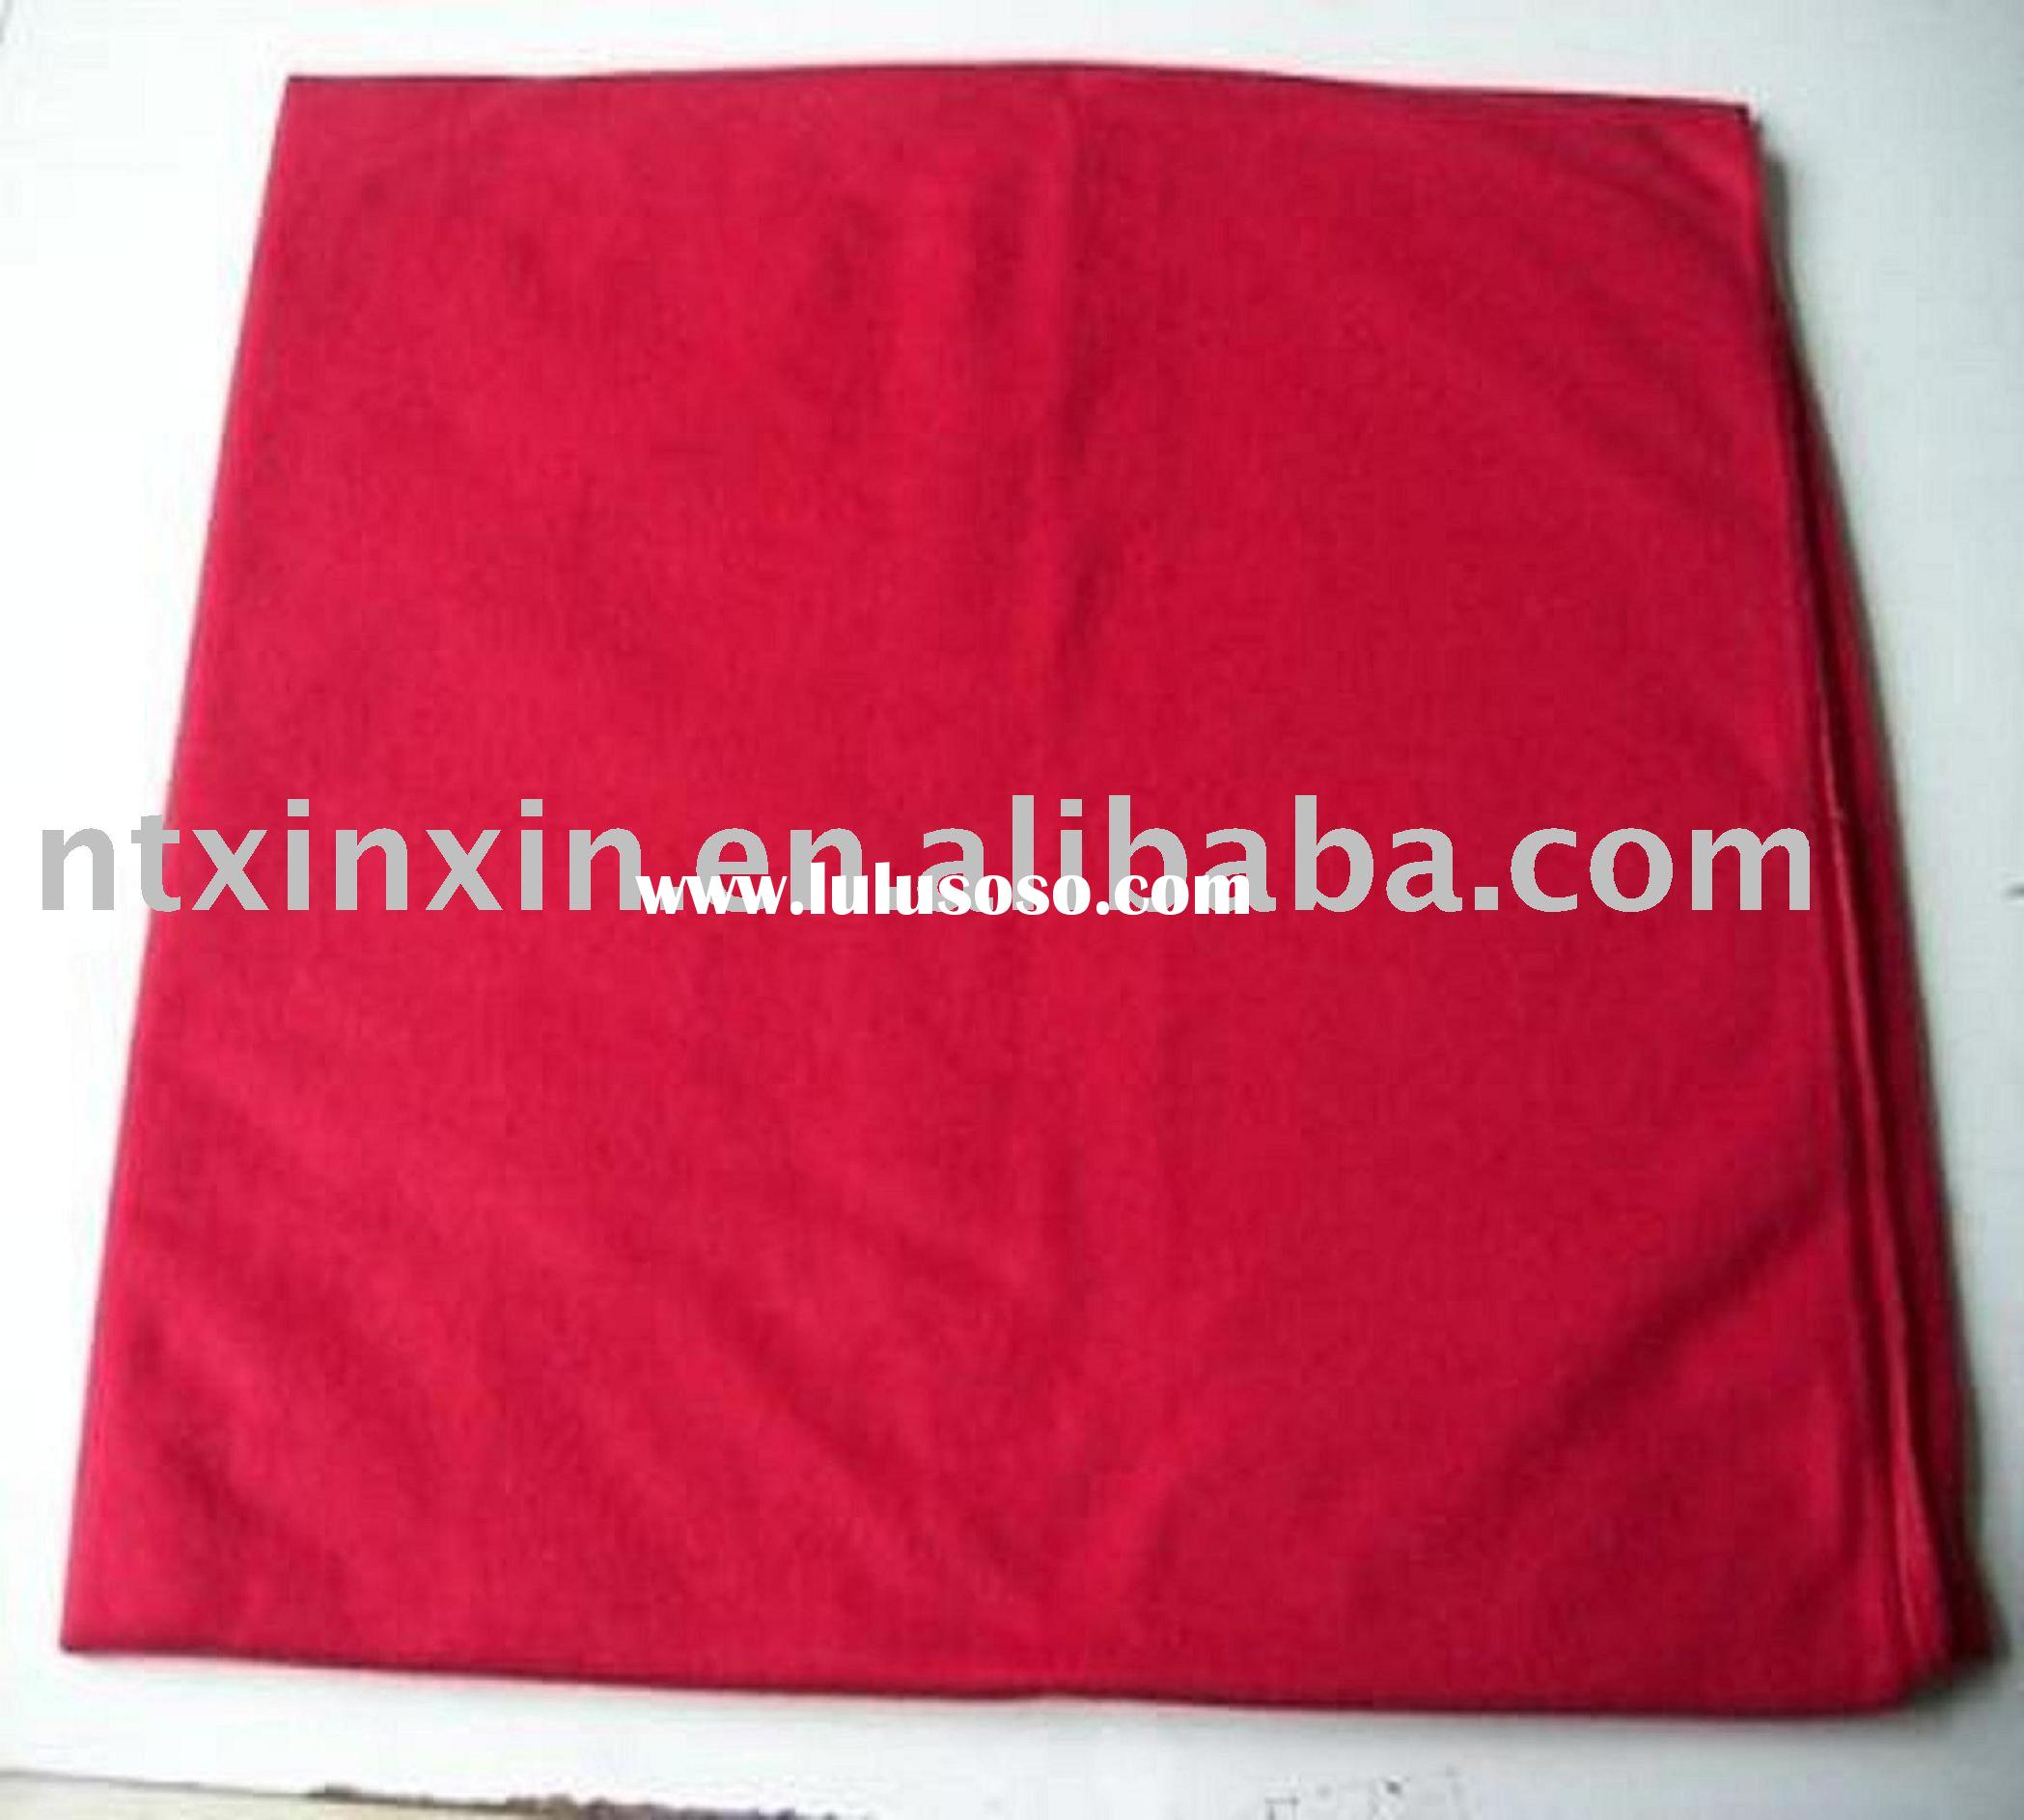 Flame Retardant 100% Modacrylic Fabric